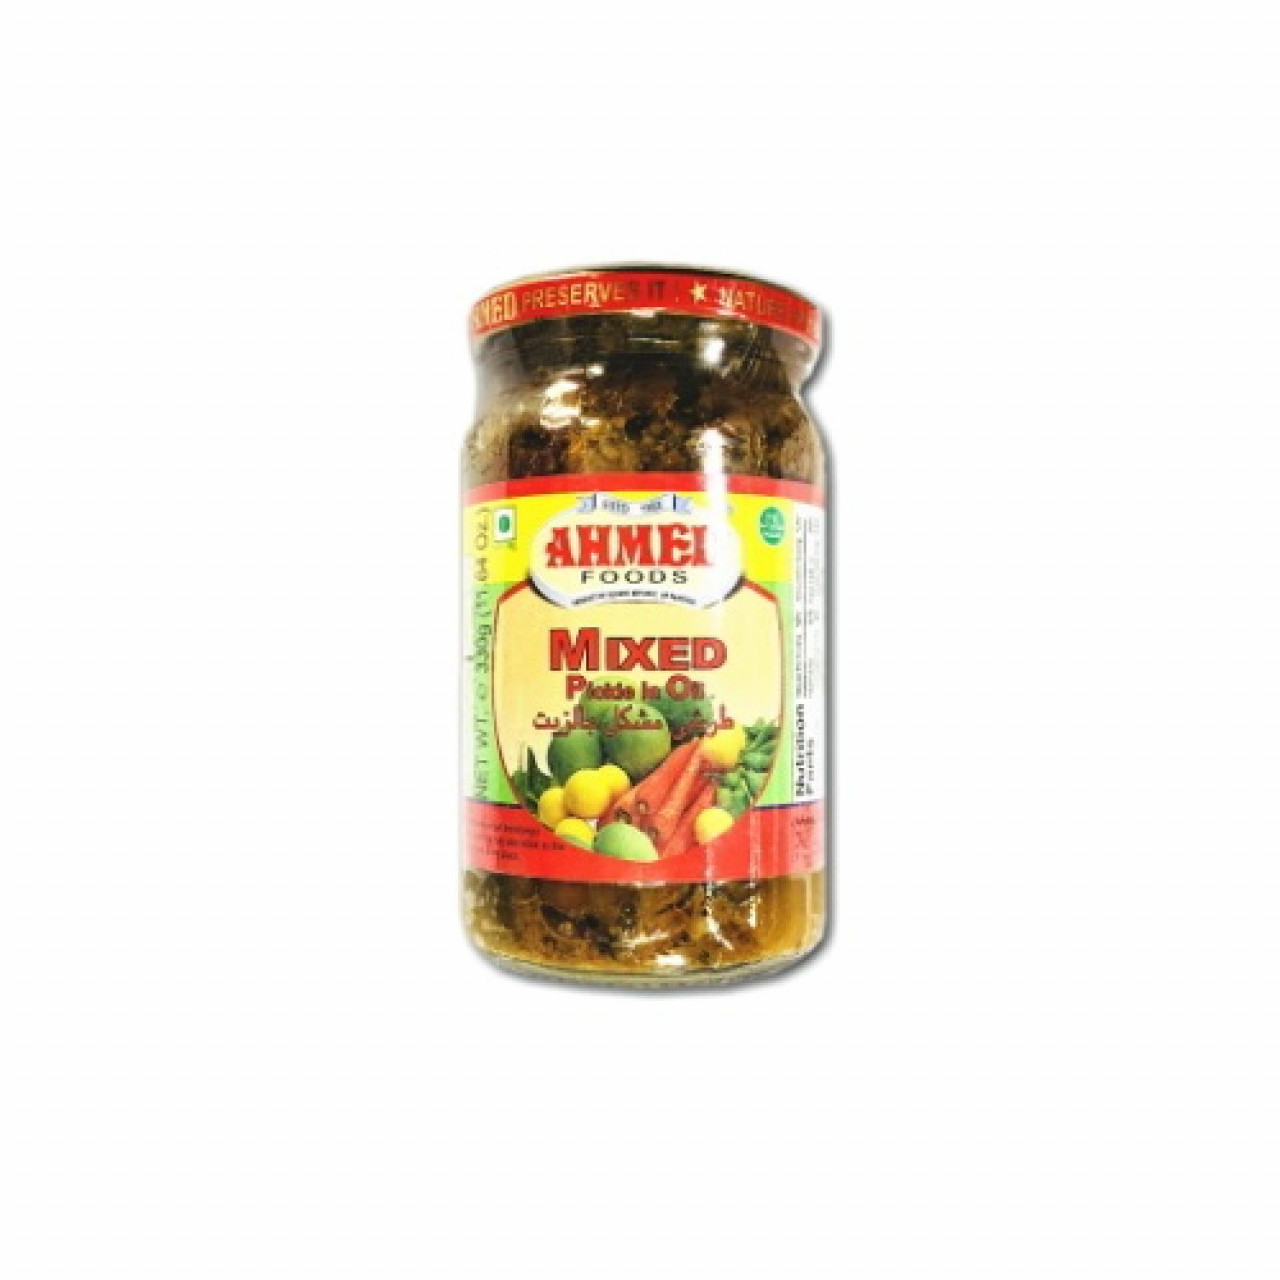 Ahmed foods mixed pickle in oil 330gm-arb